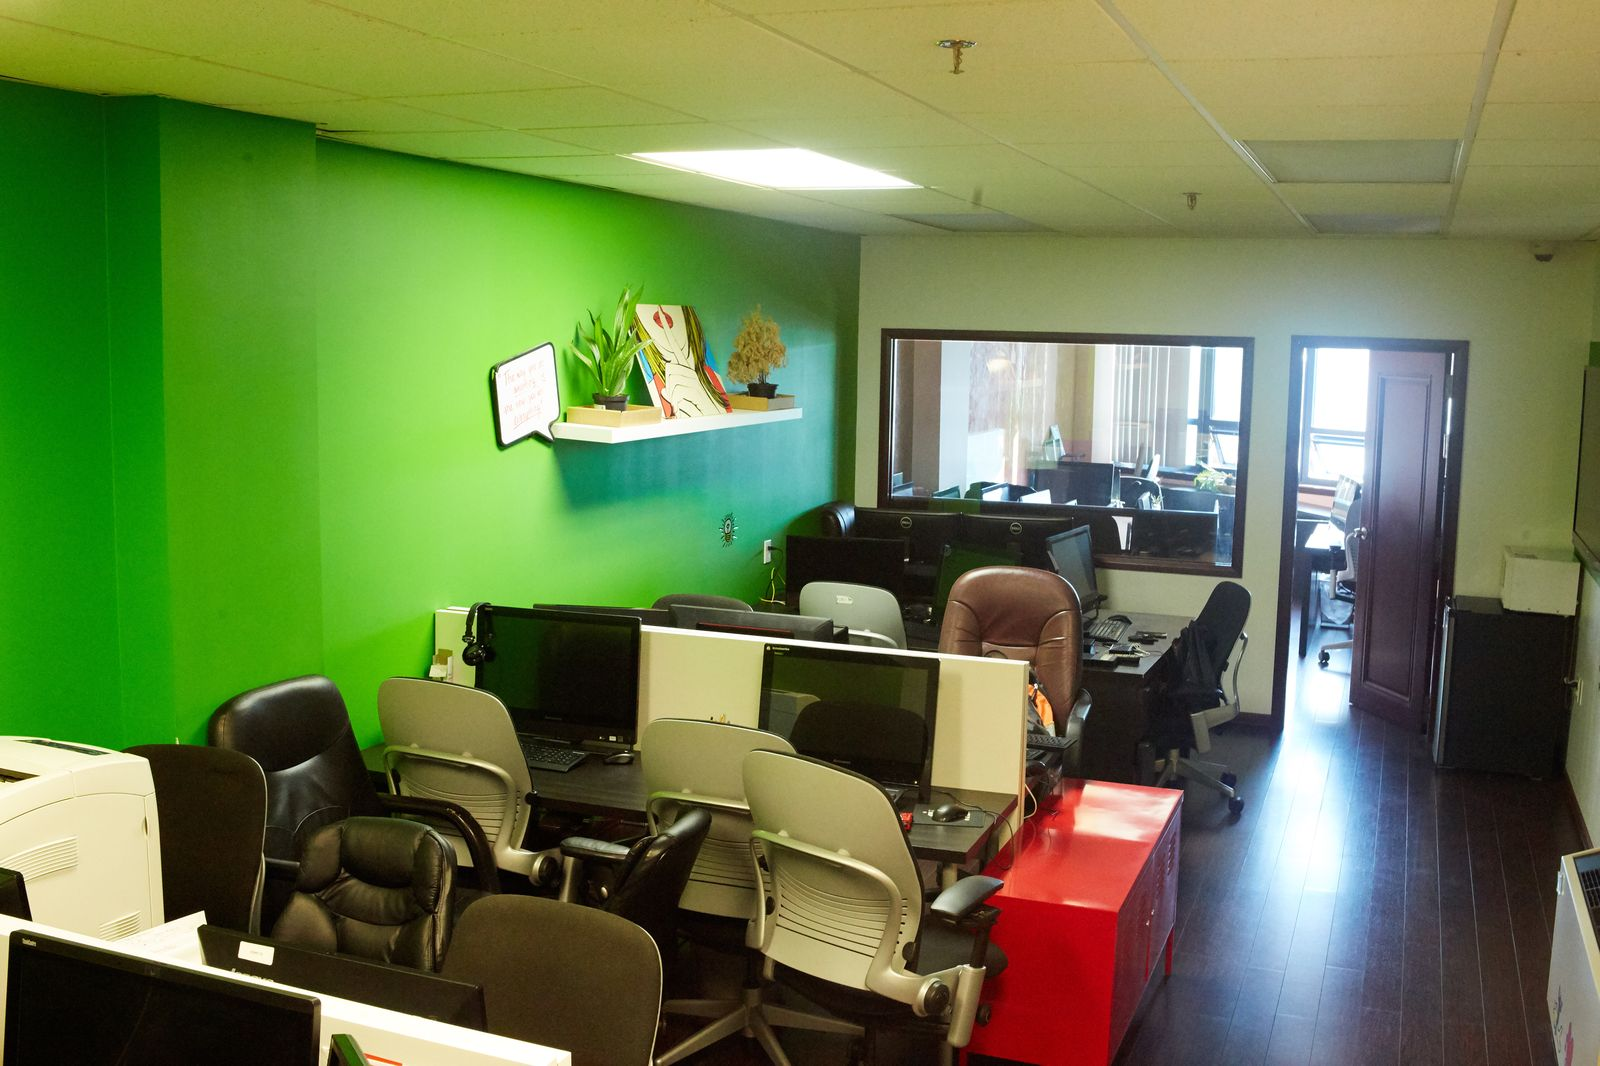 Co-working space in Sheepshead Bay, Brooklyn, NYC